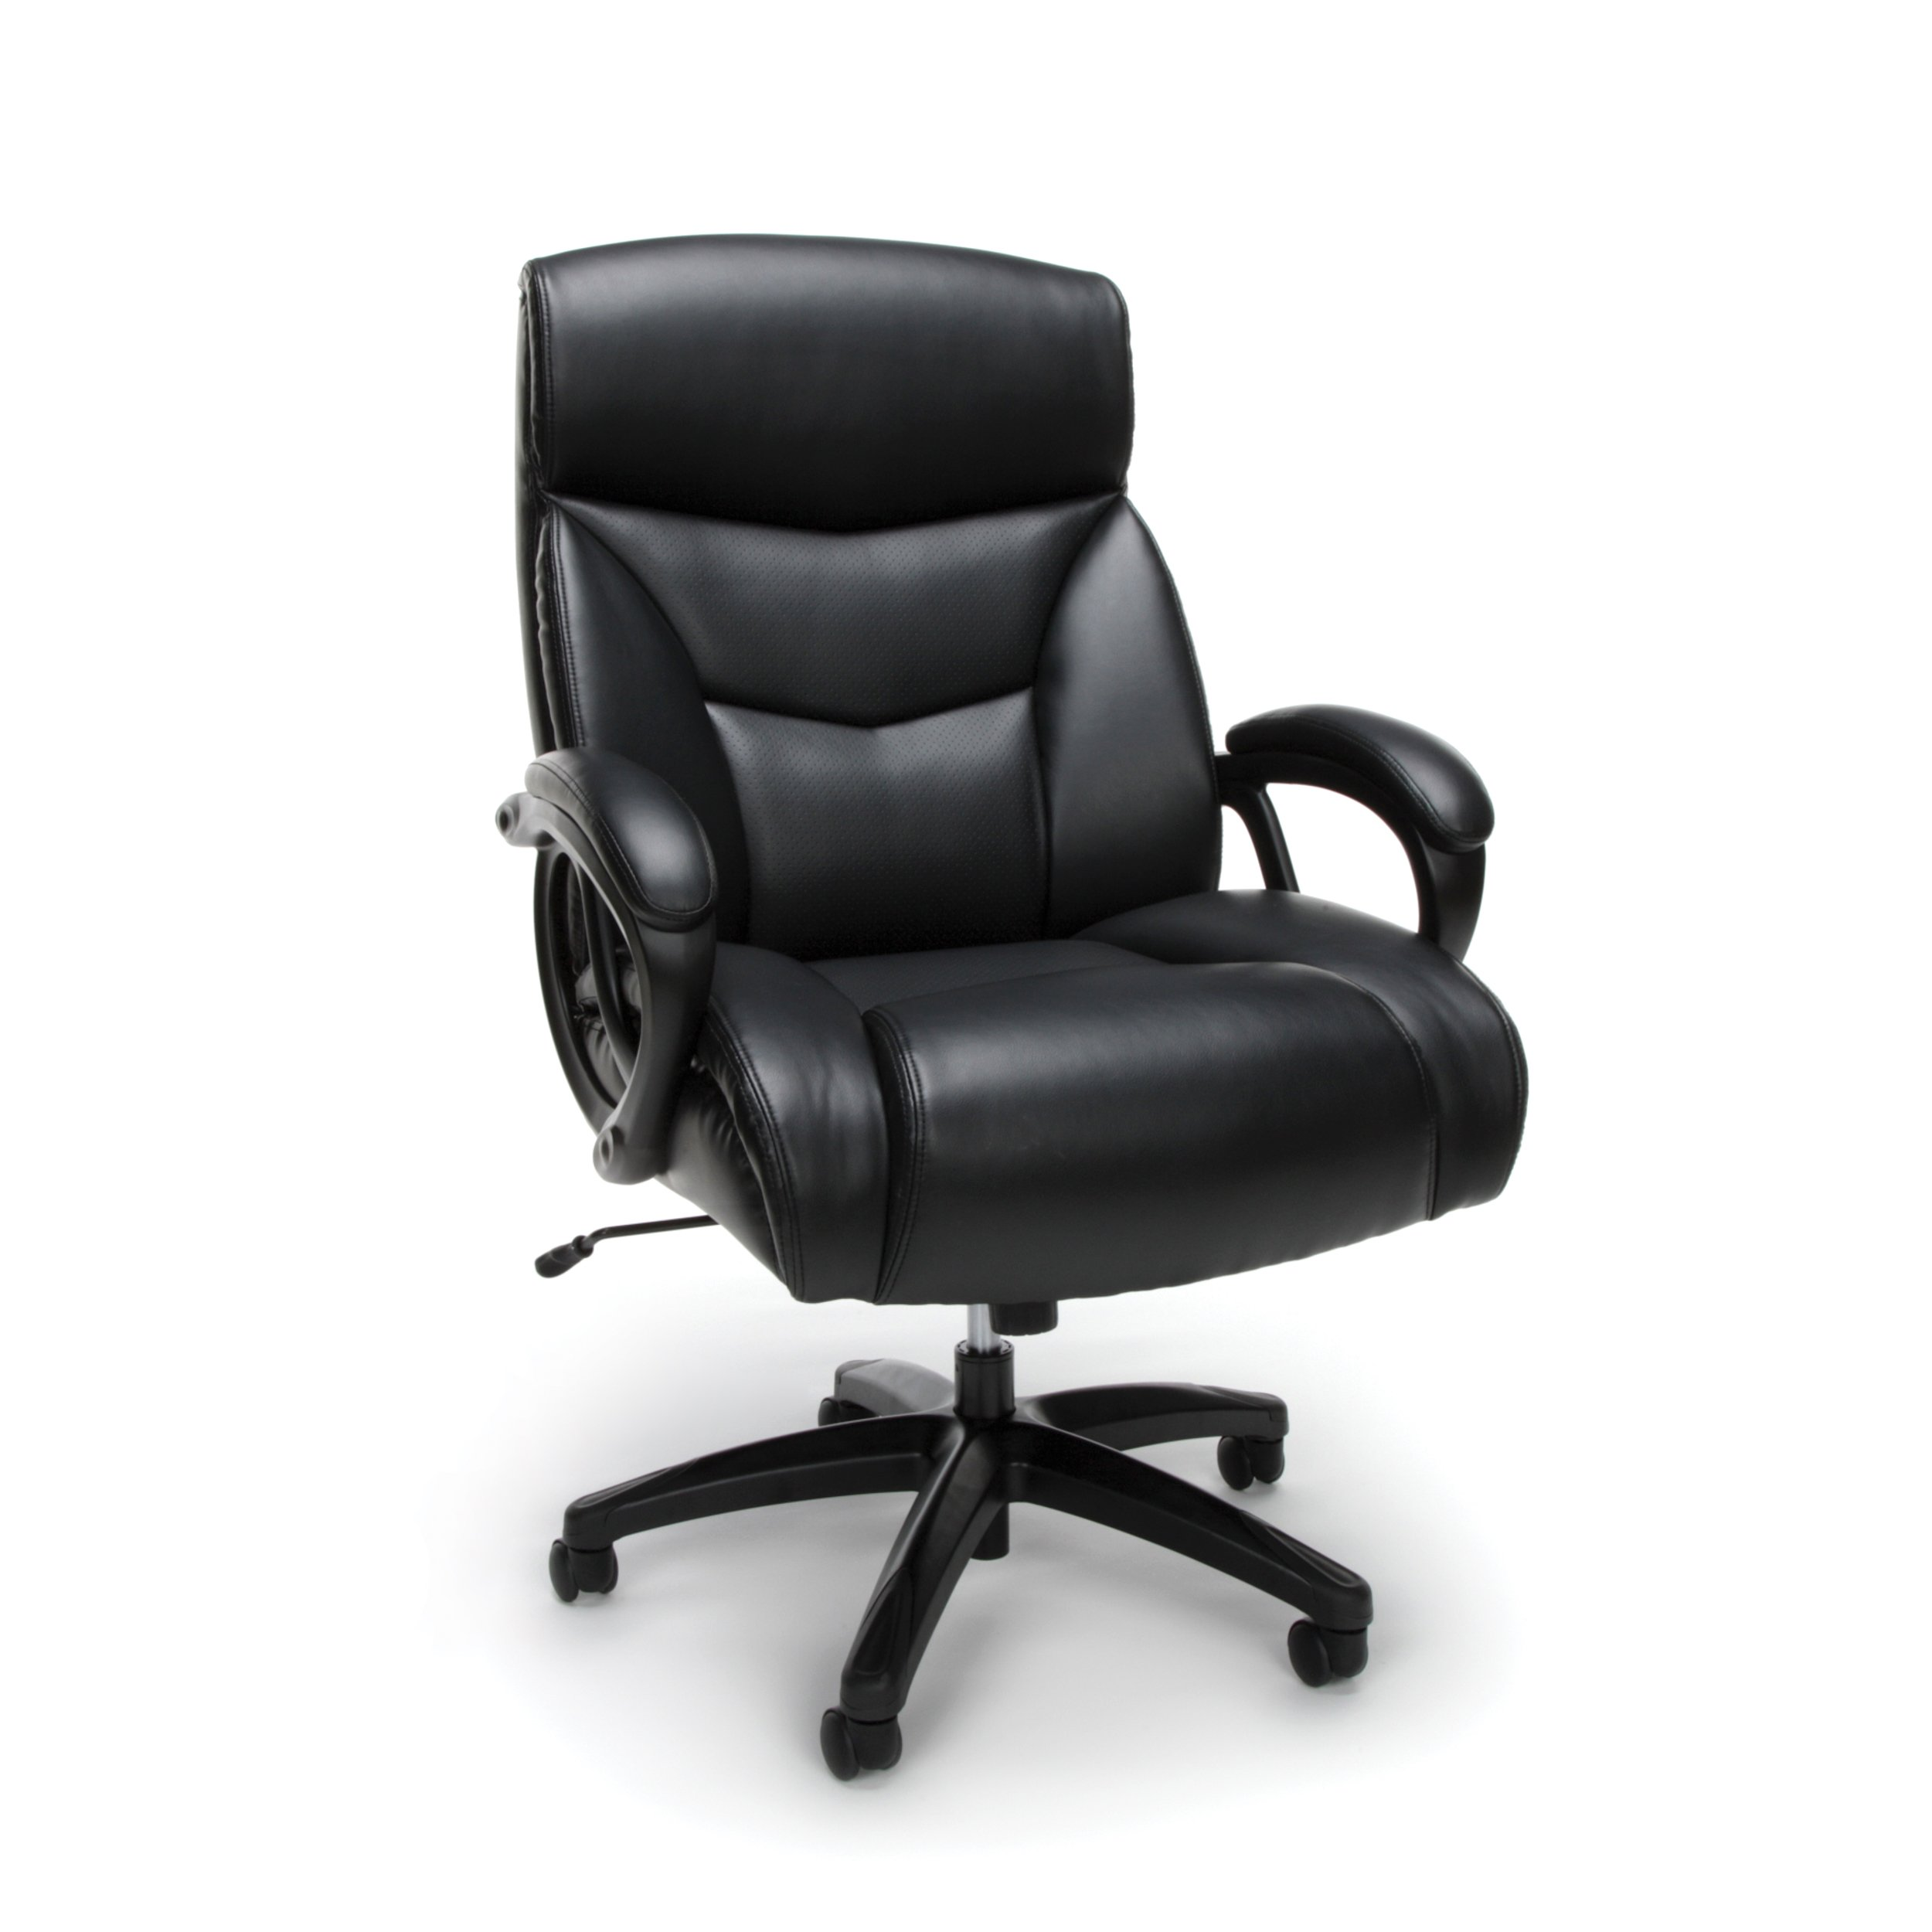 Essentials Big and Tall Leather Executive Chair - High-Back Computer/Office Chair, Black (ESS-6040-BLK) by Essentials by OFM